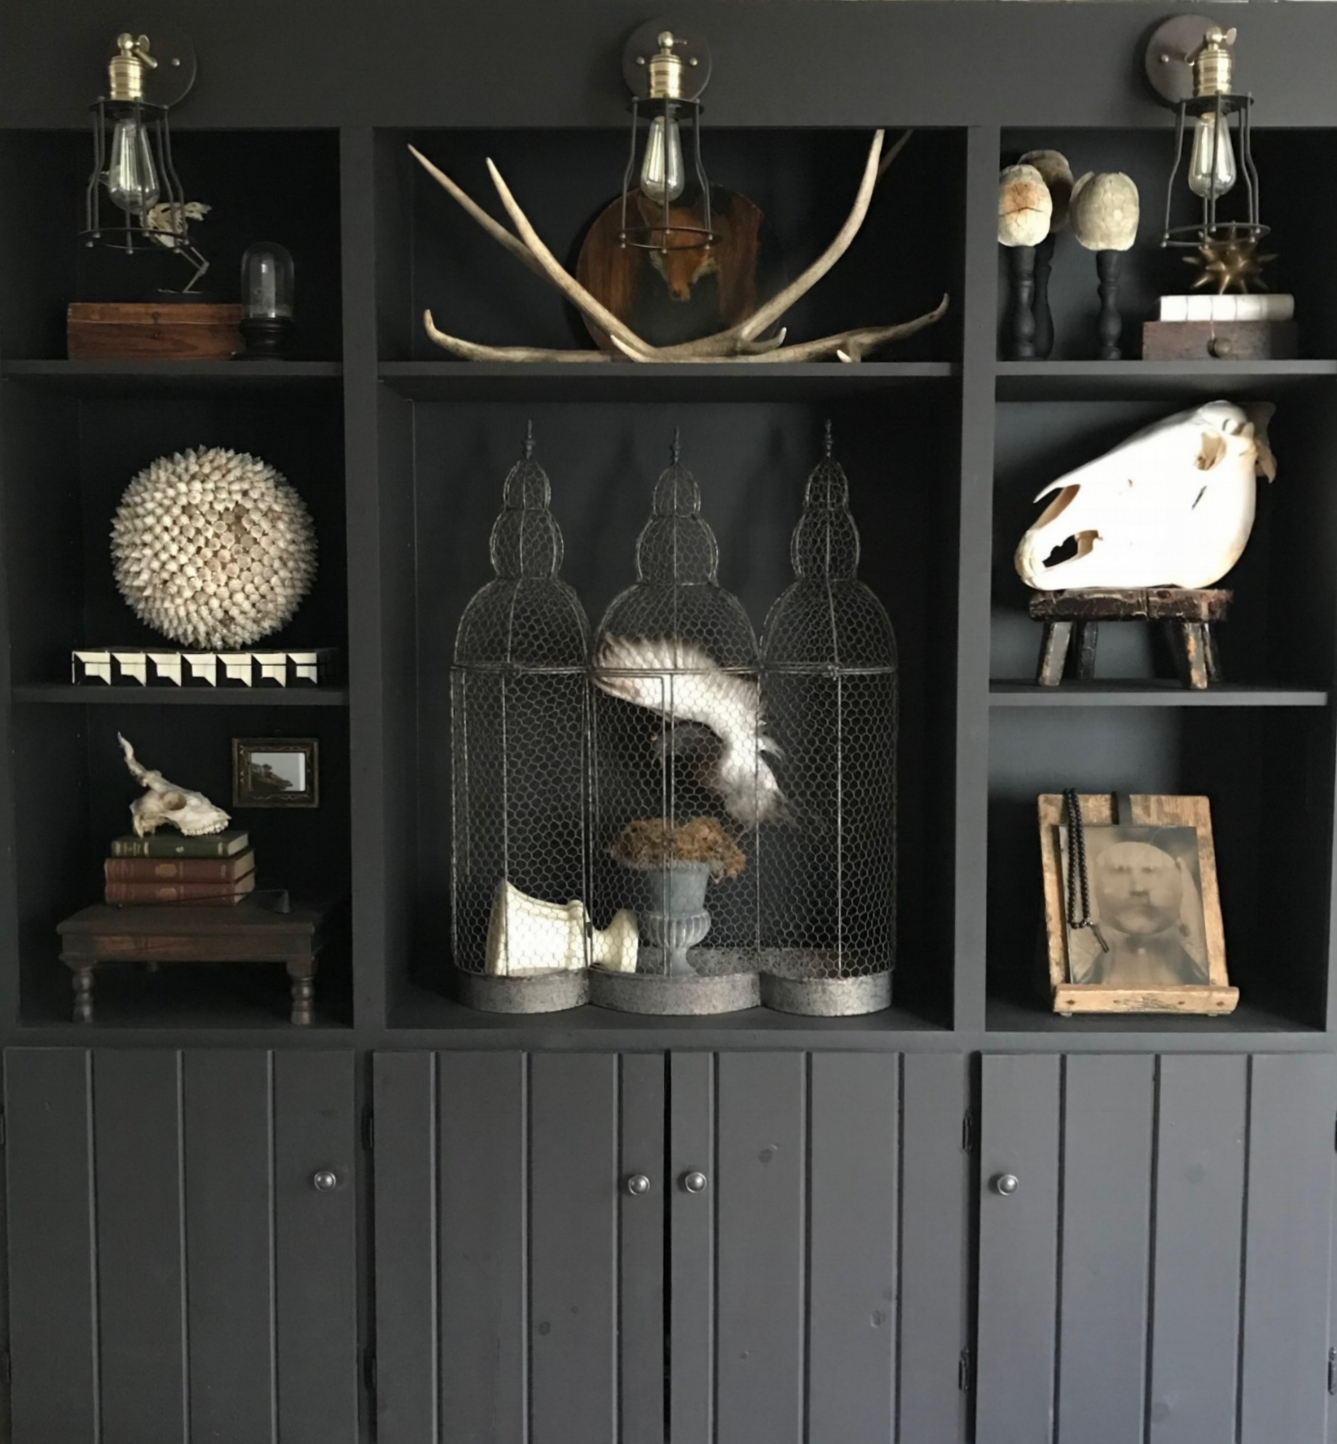 Artfully and Functionally Curated - Inspired by curiosity cabinets and museum galleries, each shelf displays objects that we've collected over the years--natural elements, antiques, and oddities. I am always amazed by Collin's ability to create a grouping where each vignette is a solitary piece of art, yet the entire collection reads as one unified installation. At this point, I guess I should just expect it--but my appreciation of his talent grows every day. He sees no need to sacrifice aesthetics for function. The cabinets neatly and necessarily contain electronics, games, and other items. Additionally, we needed to distribute more light in the room and the sconces accomplish that nicely while bringing in a touch of an industrial feel.